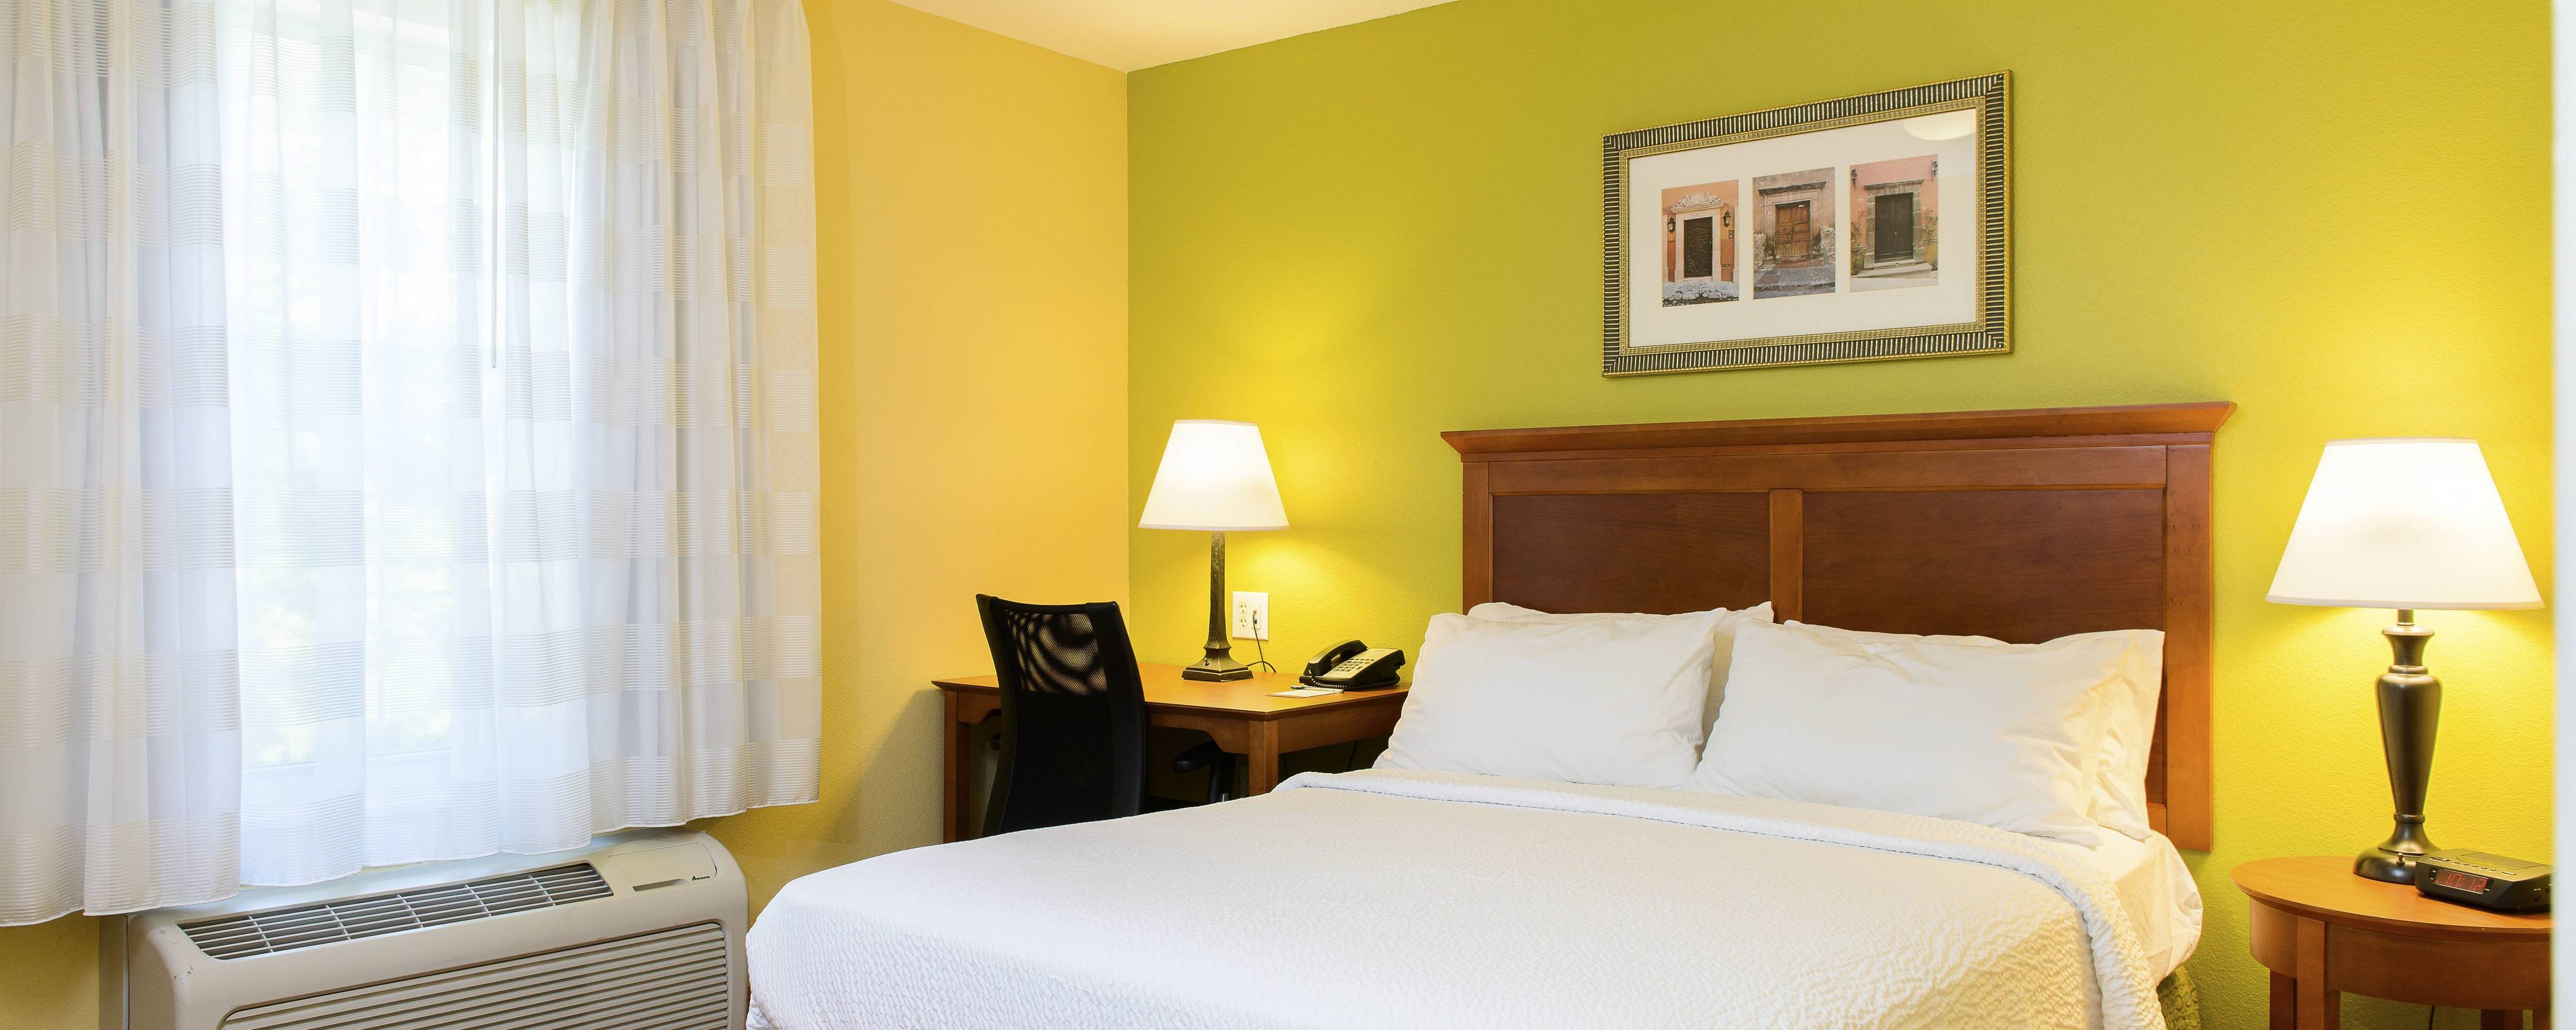 Best Extended Stay Hotel In Bowie Md Towneplace Suites With Pictures